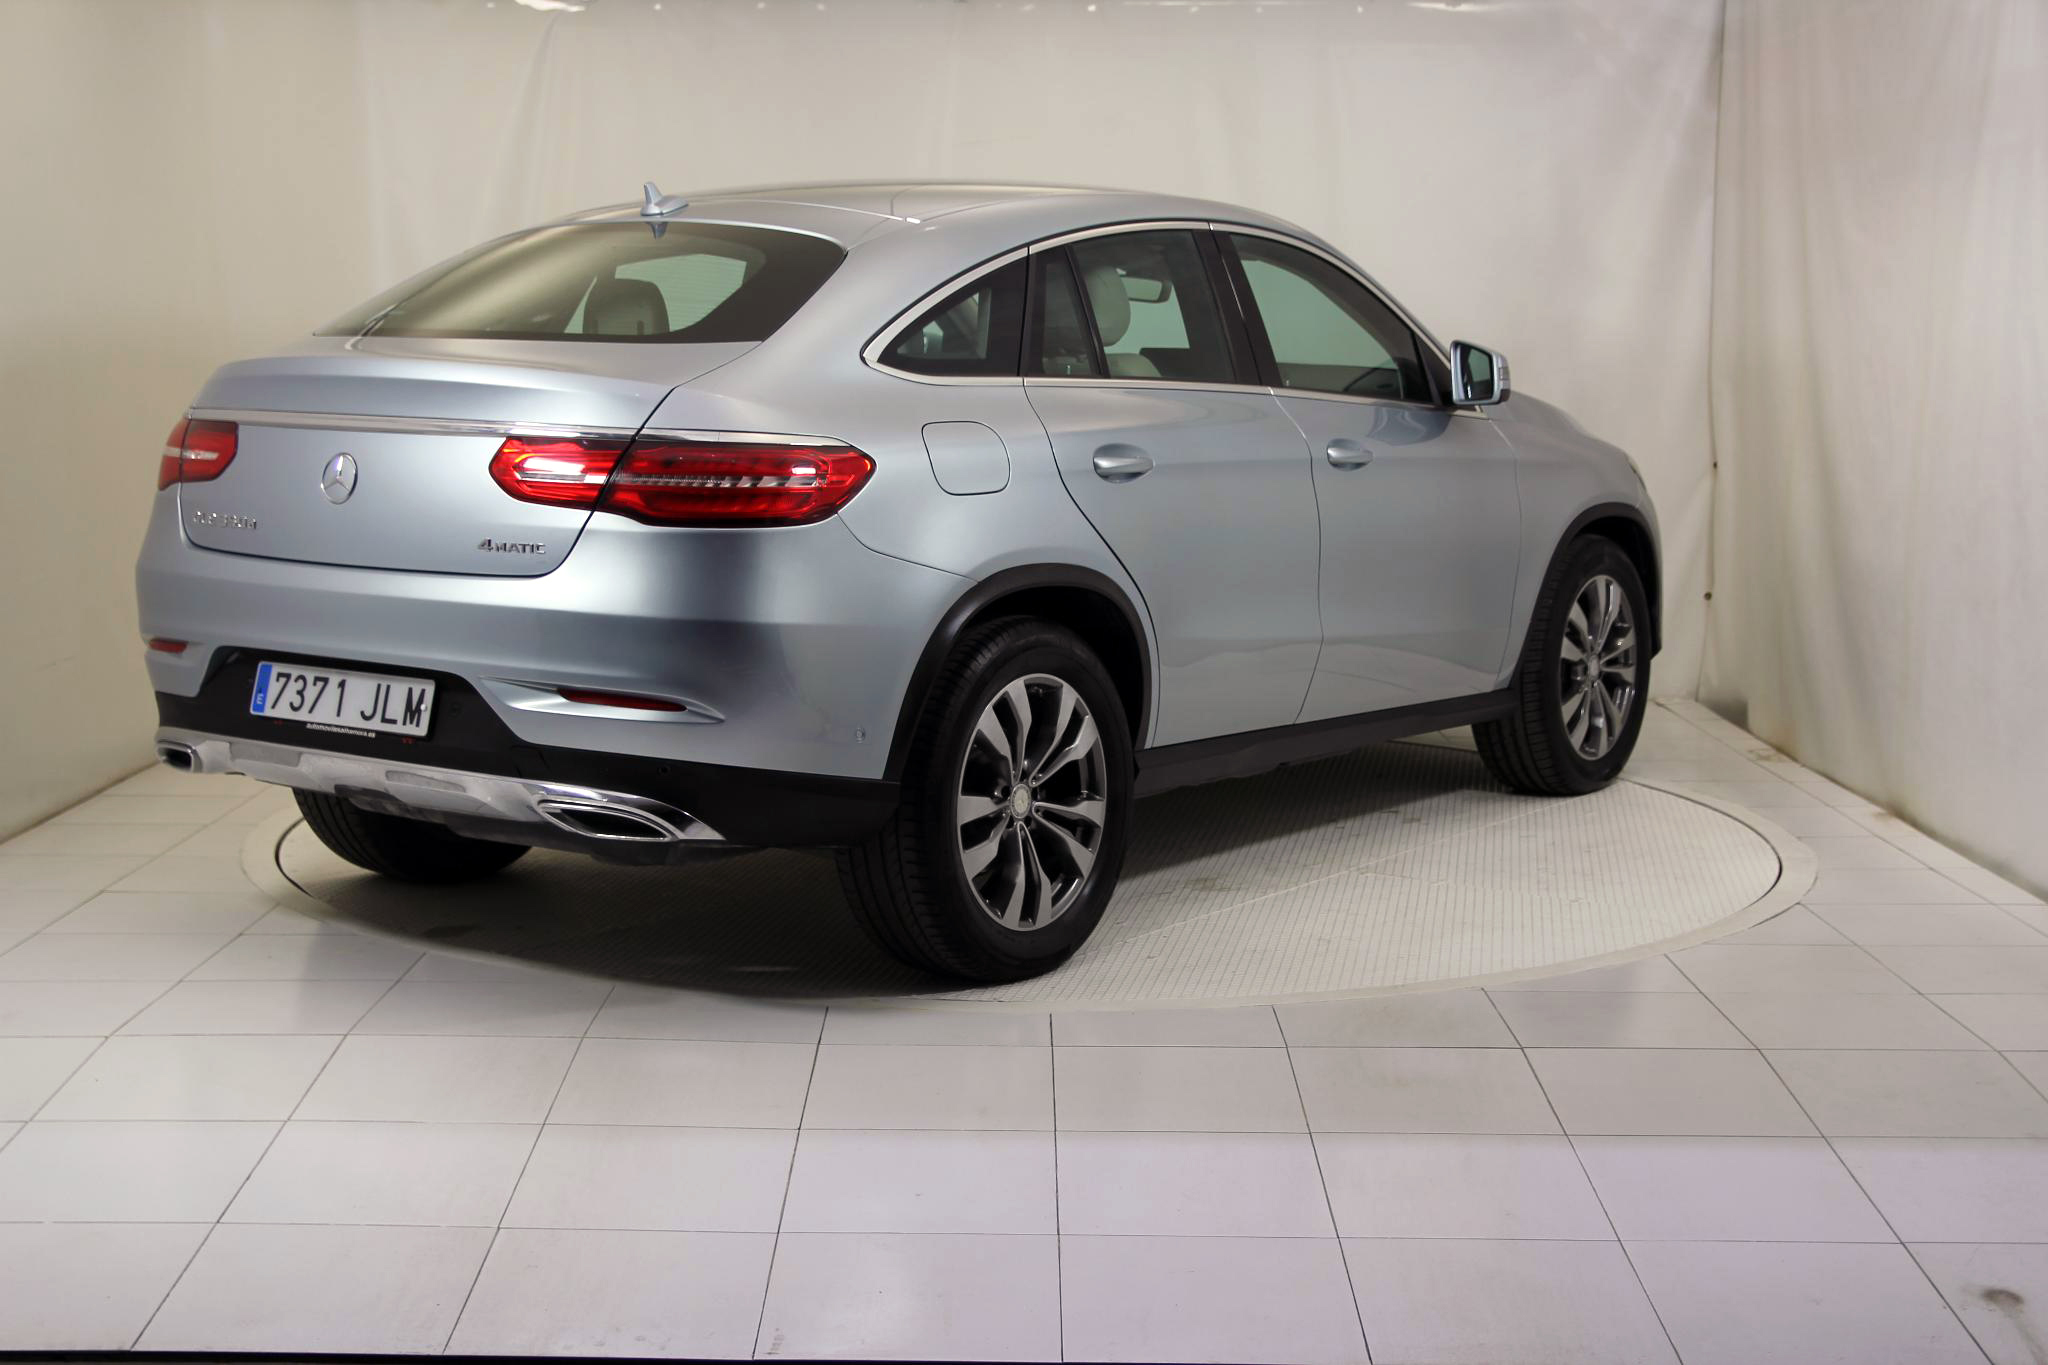 Mercedes-Benz Clase GLE GLE COUPE 350 D 4MATIC imagen 6